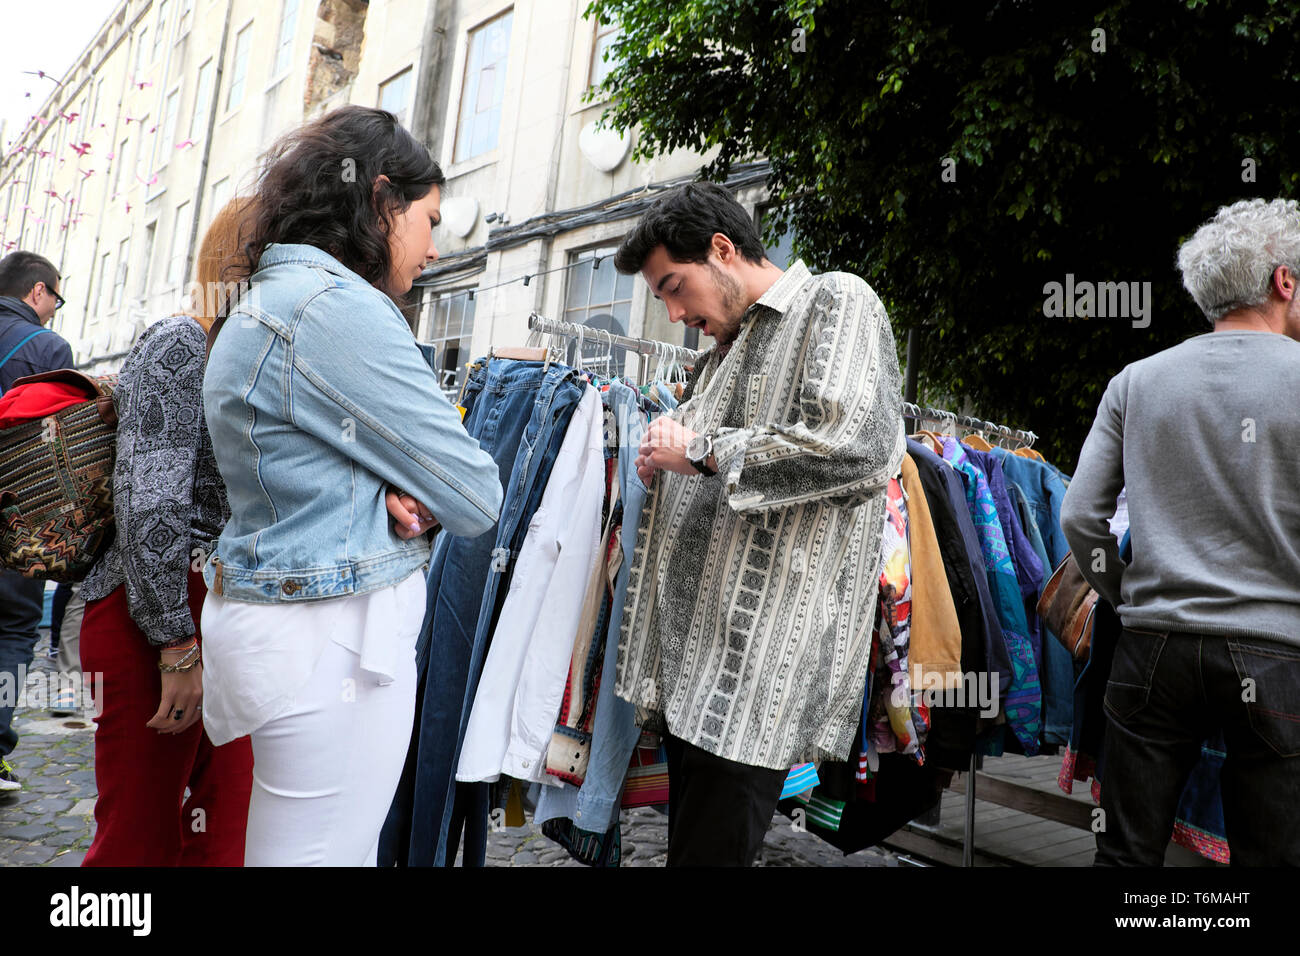 A Portuguese man trying on a vintage shirt on a second hand recycled clothing stall at the LX Factory Market in Lisbon Lisboa Portugal  KATHY DEWITT - Stock Image